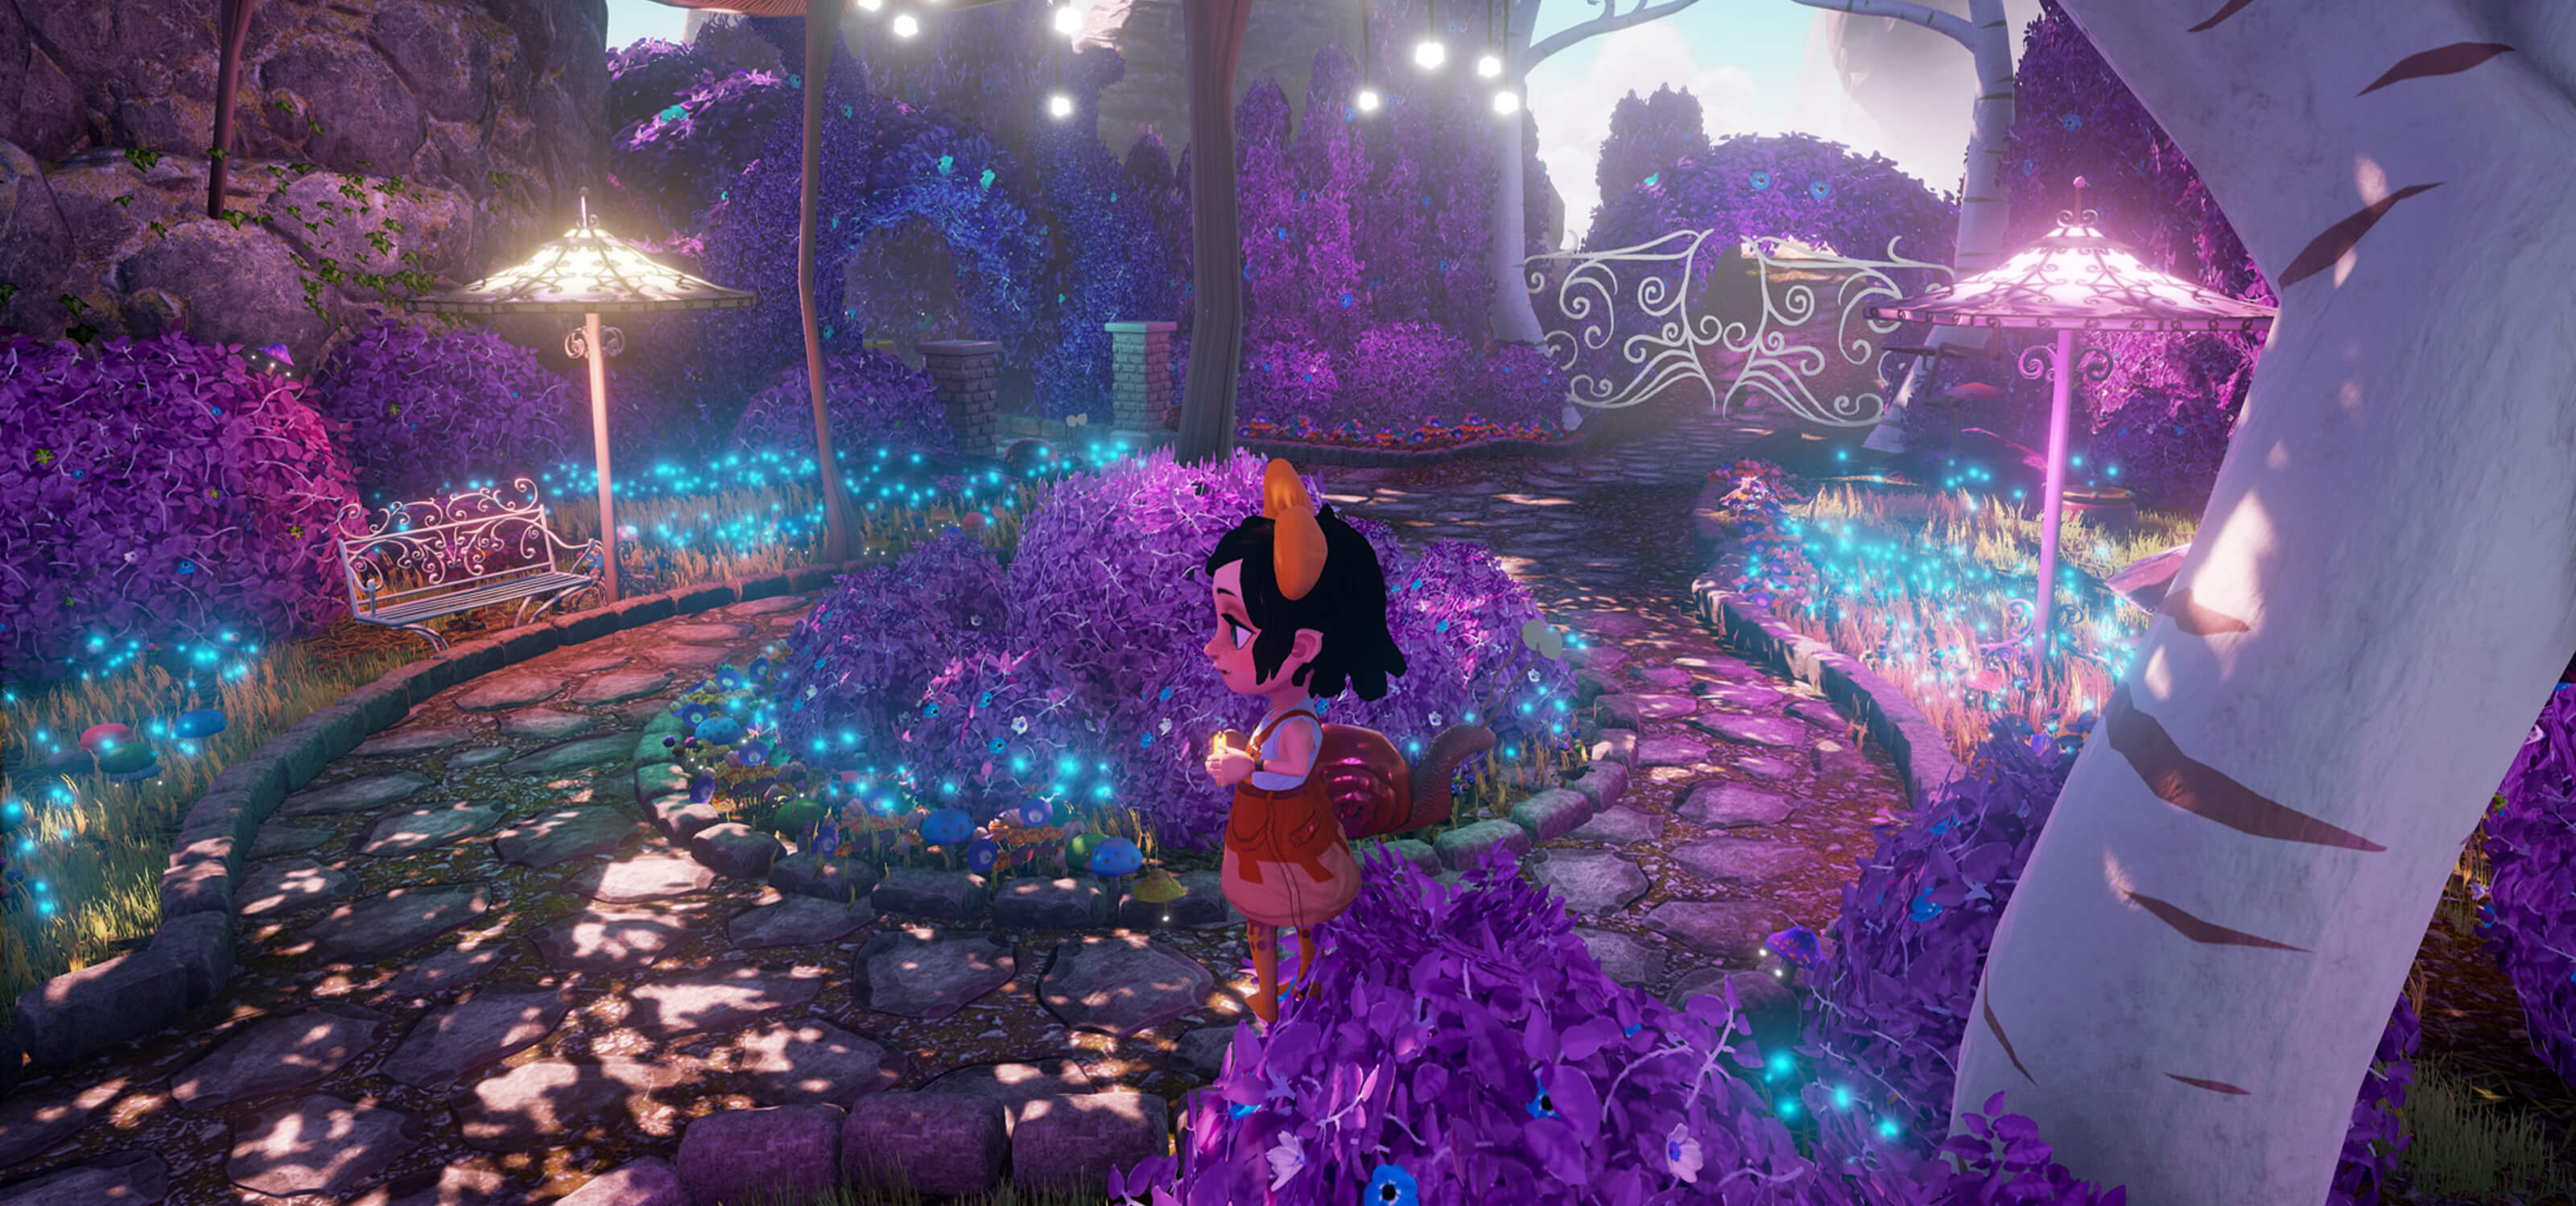 Screenshot from DigiPen student game Somnus of Melanie, a young girl in a magical garden rendered in shades of purple